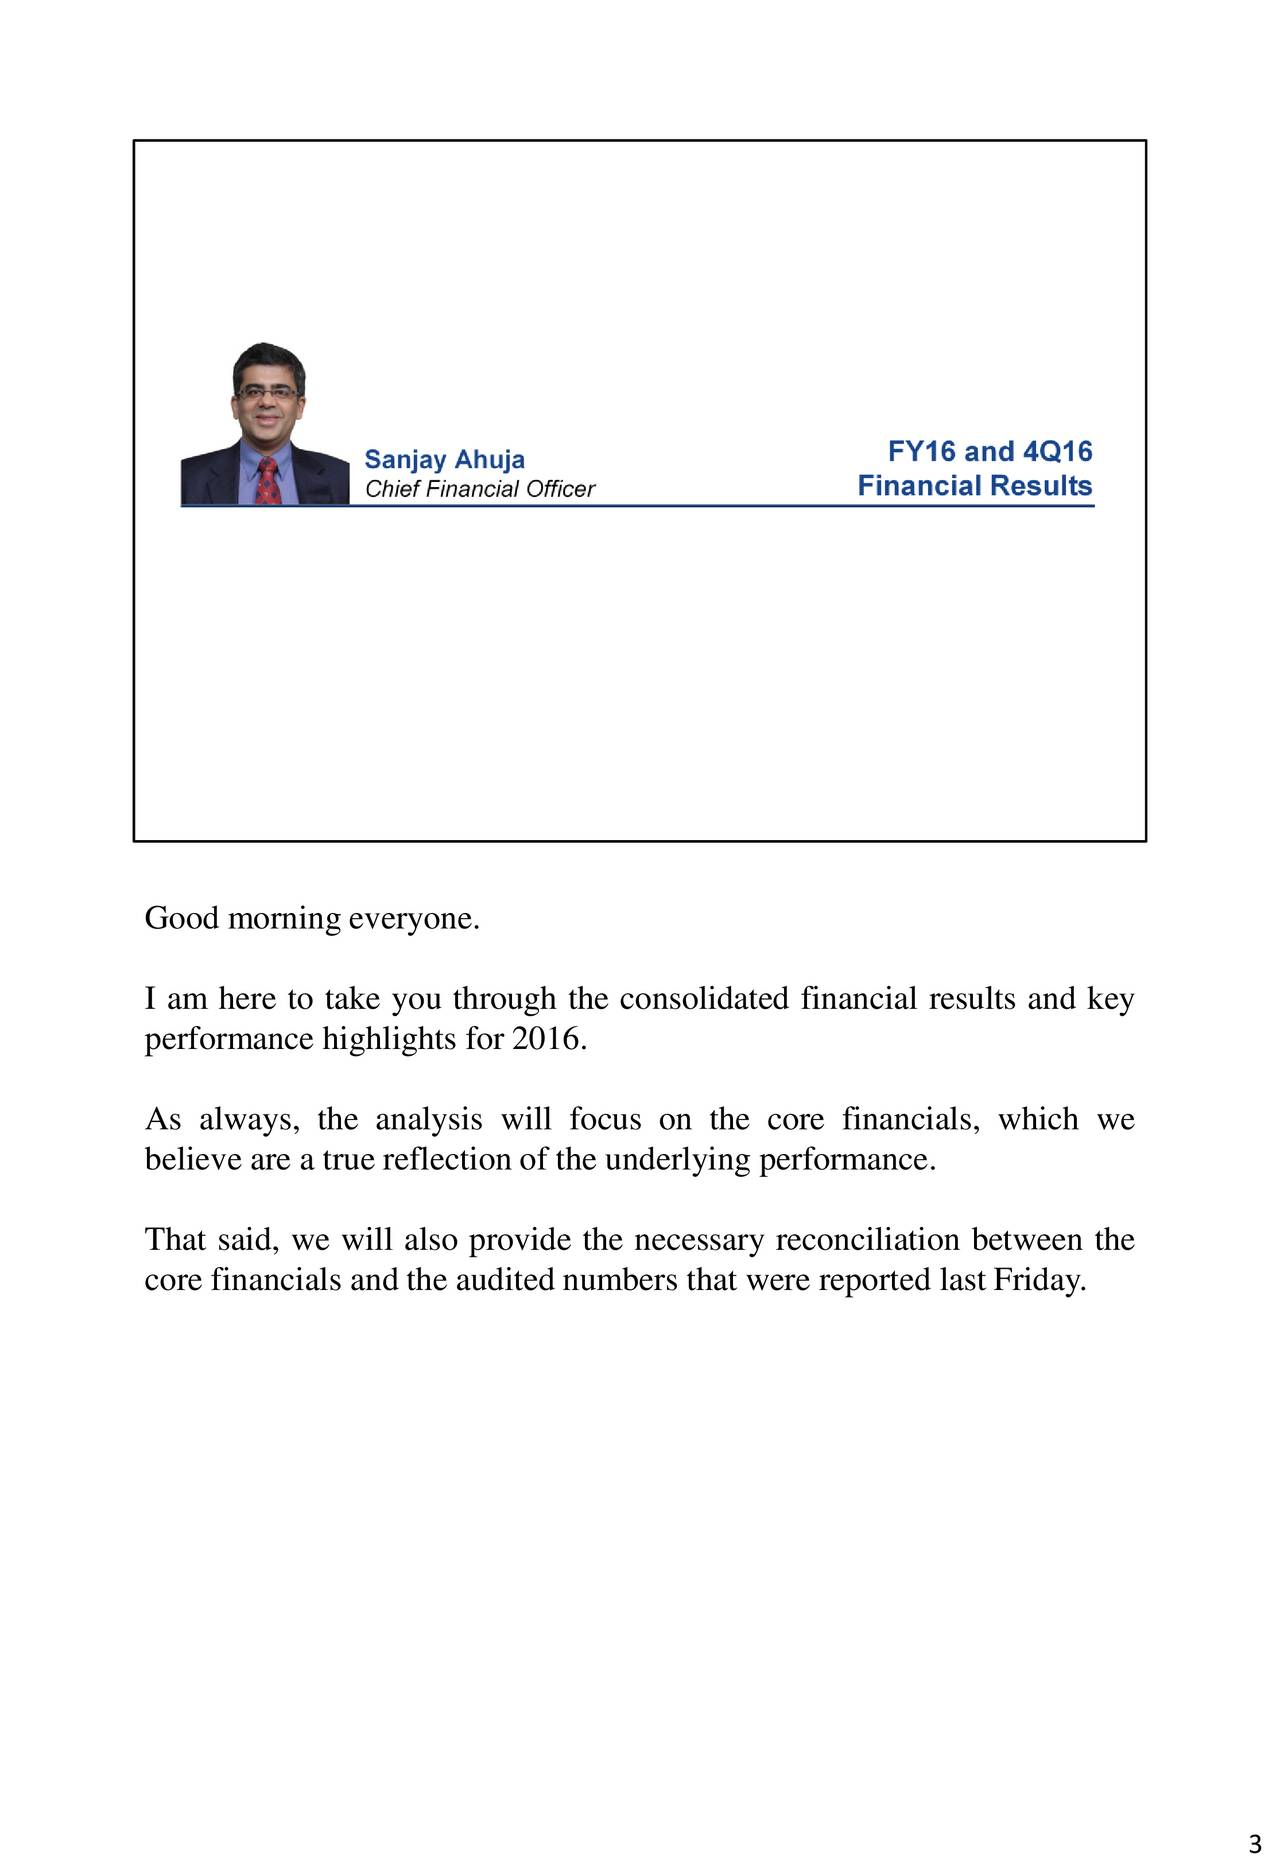 I am here to take you through the consolidated financial results and key performance highlights for 2016. As always, the analysis will focus on the core financials, which we believe are a true reflection of the underlying performance. That said, we will also provide the necessary reconciliation between the core financials and the audited numbers that were reported last Friday.